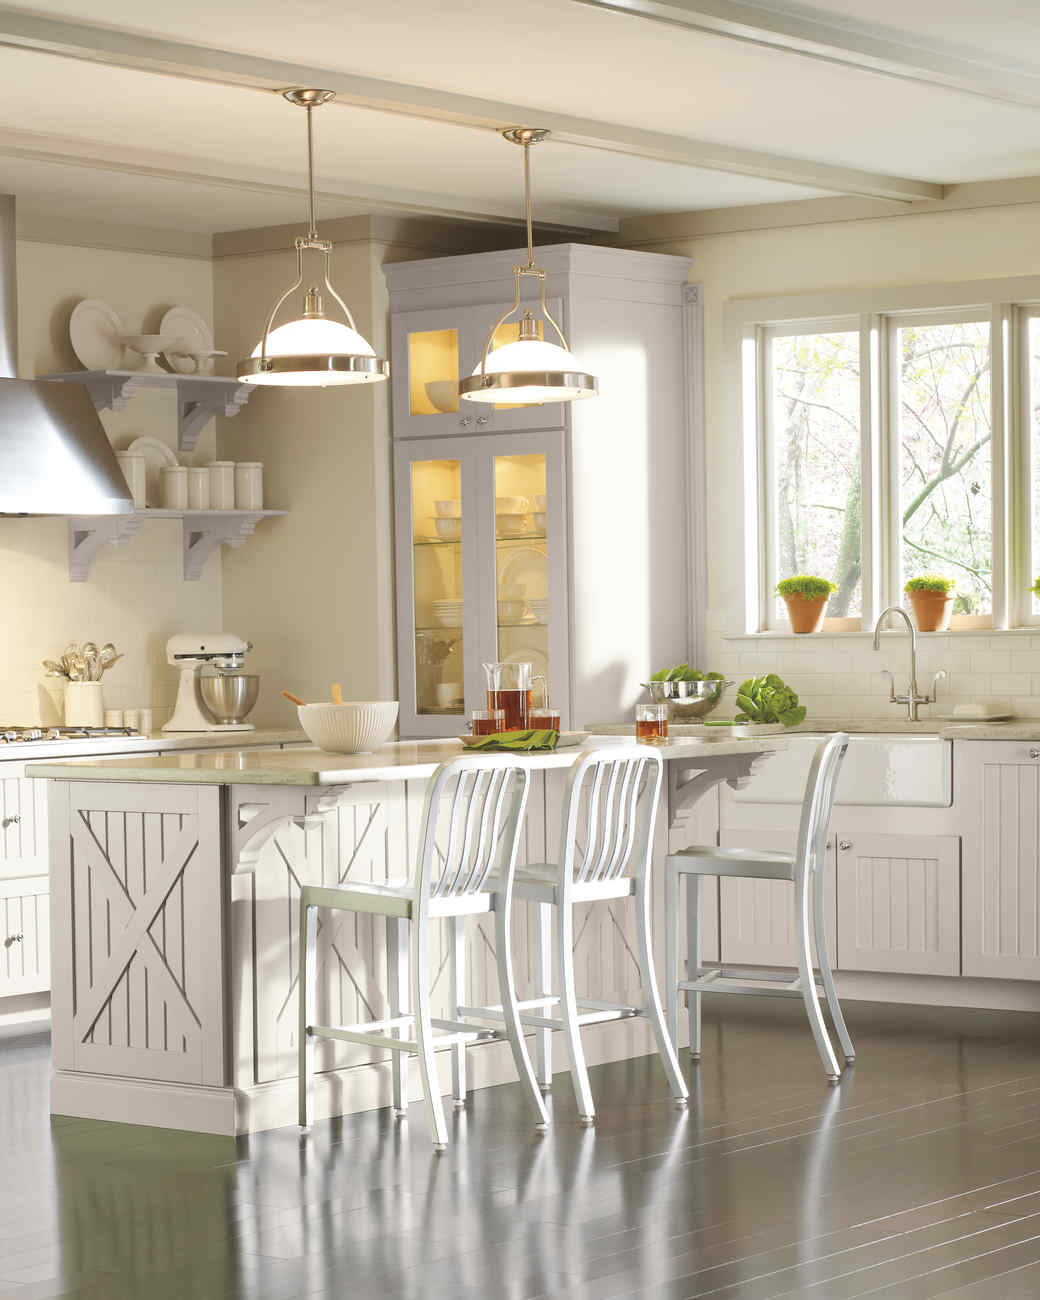 martha stewart kitchen island select your kitchen style martha stewart 20546